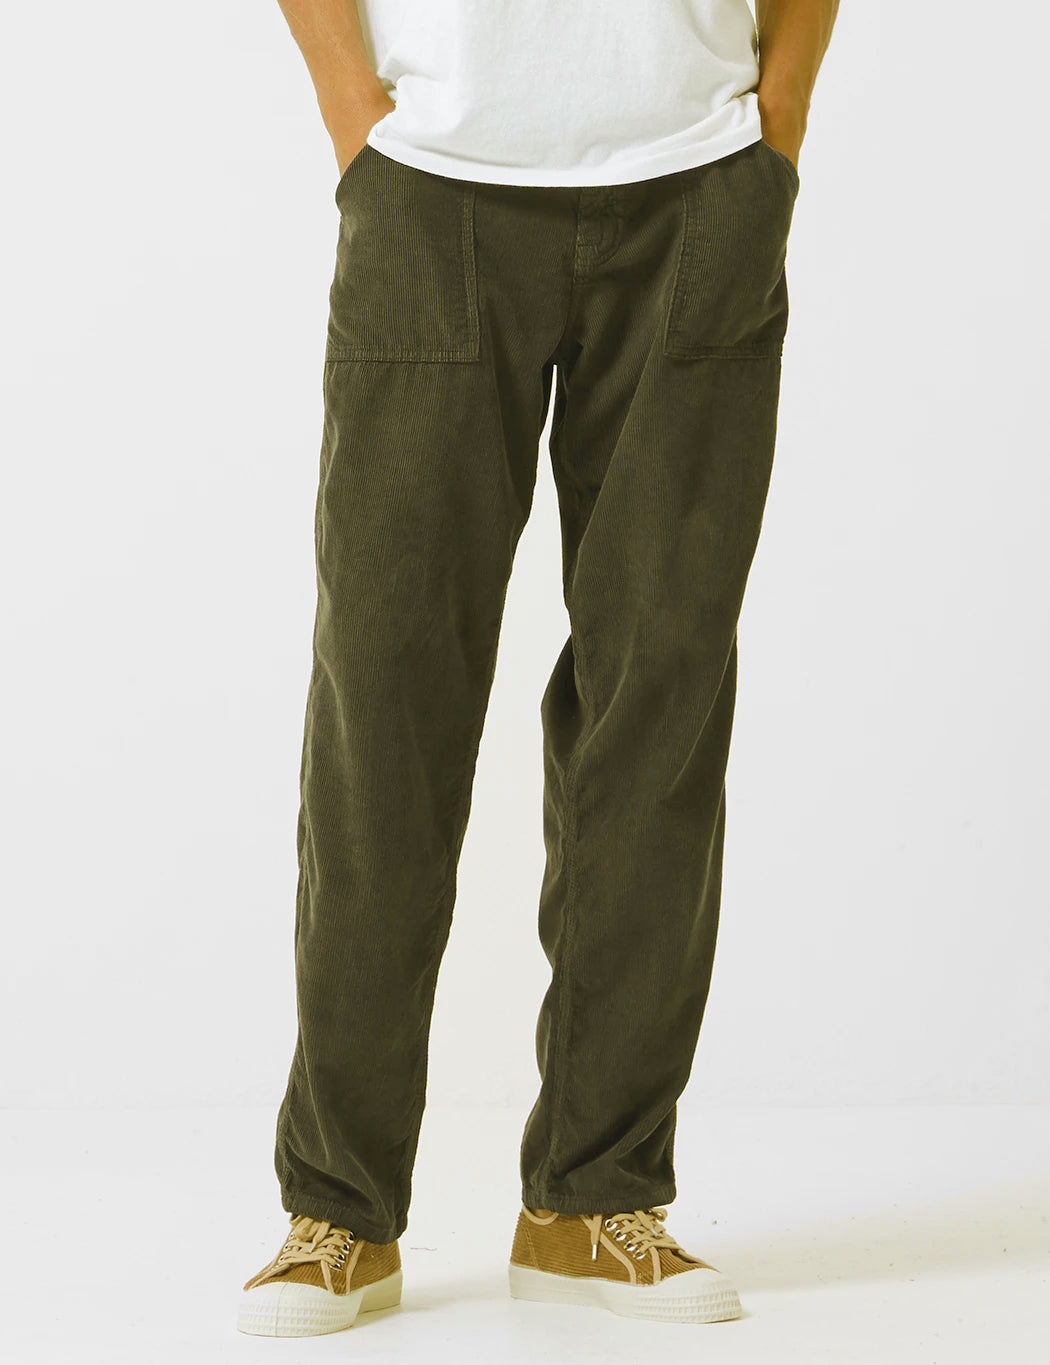 Stan Ray Fatigue Cord Pant (Tapered) - Olive Green